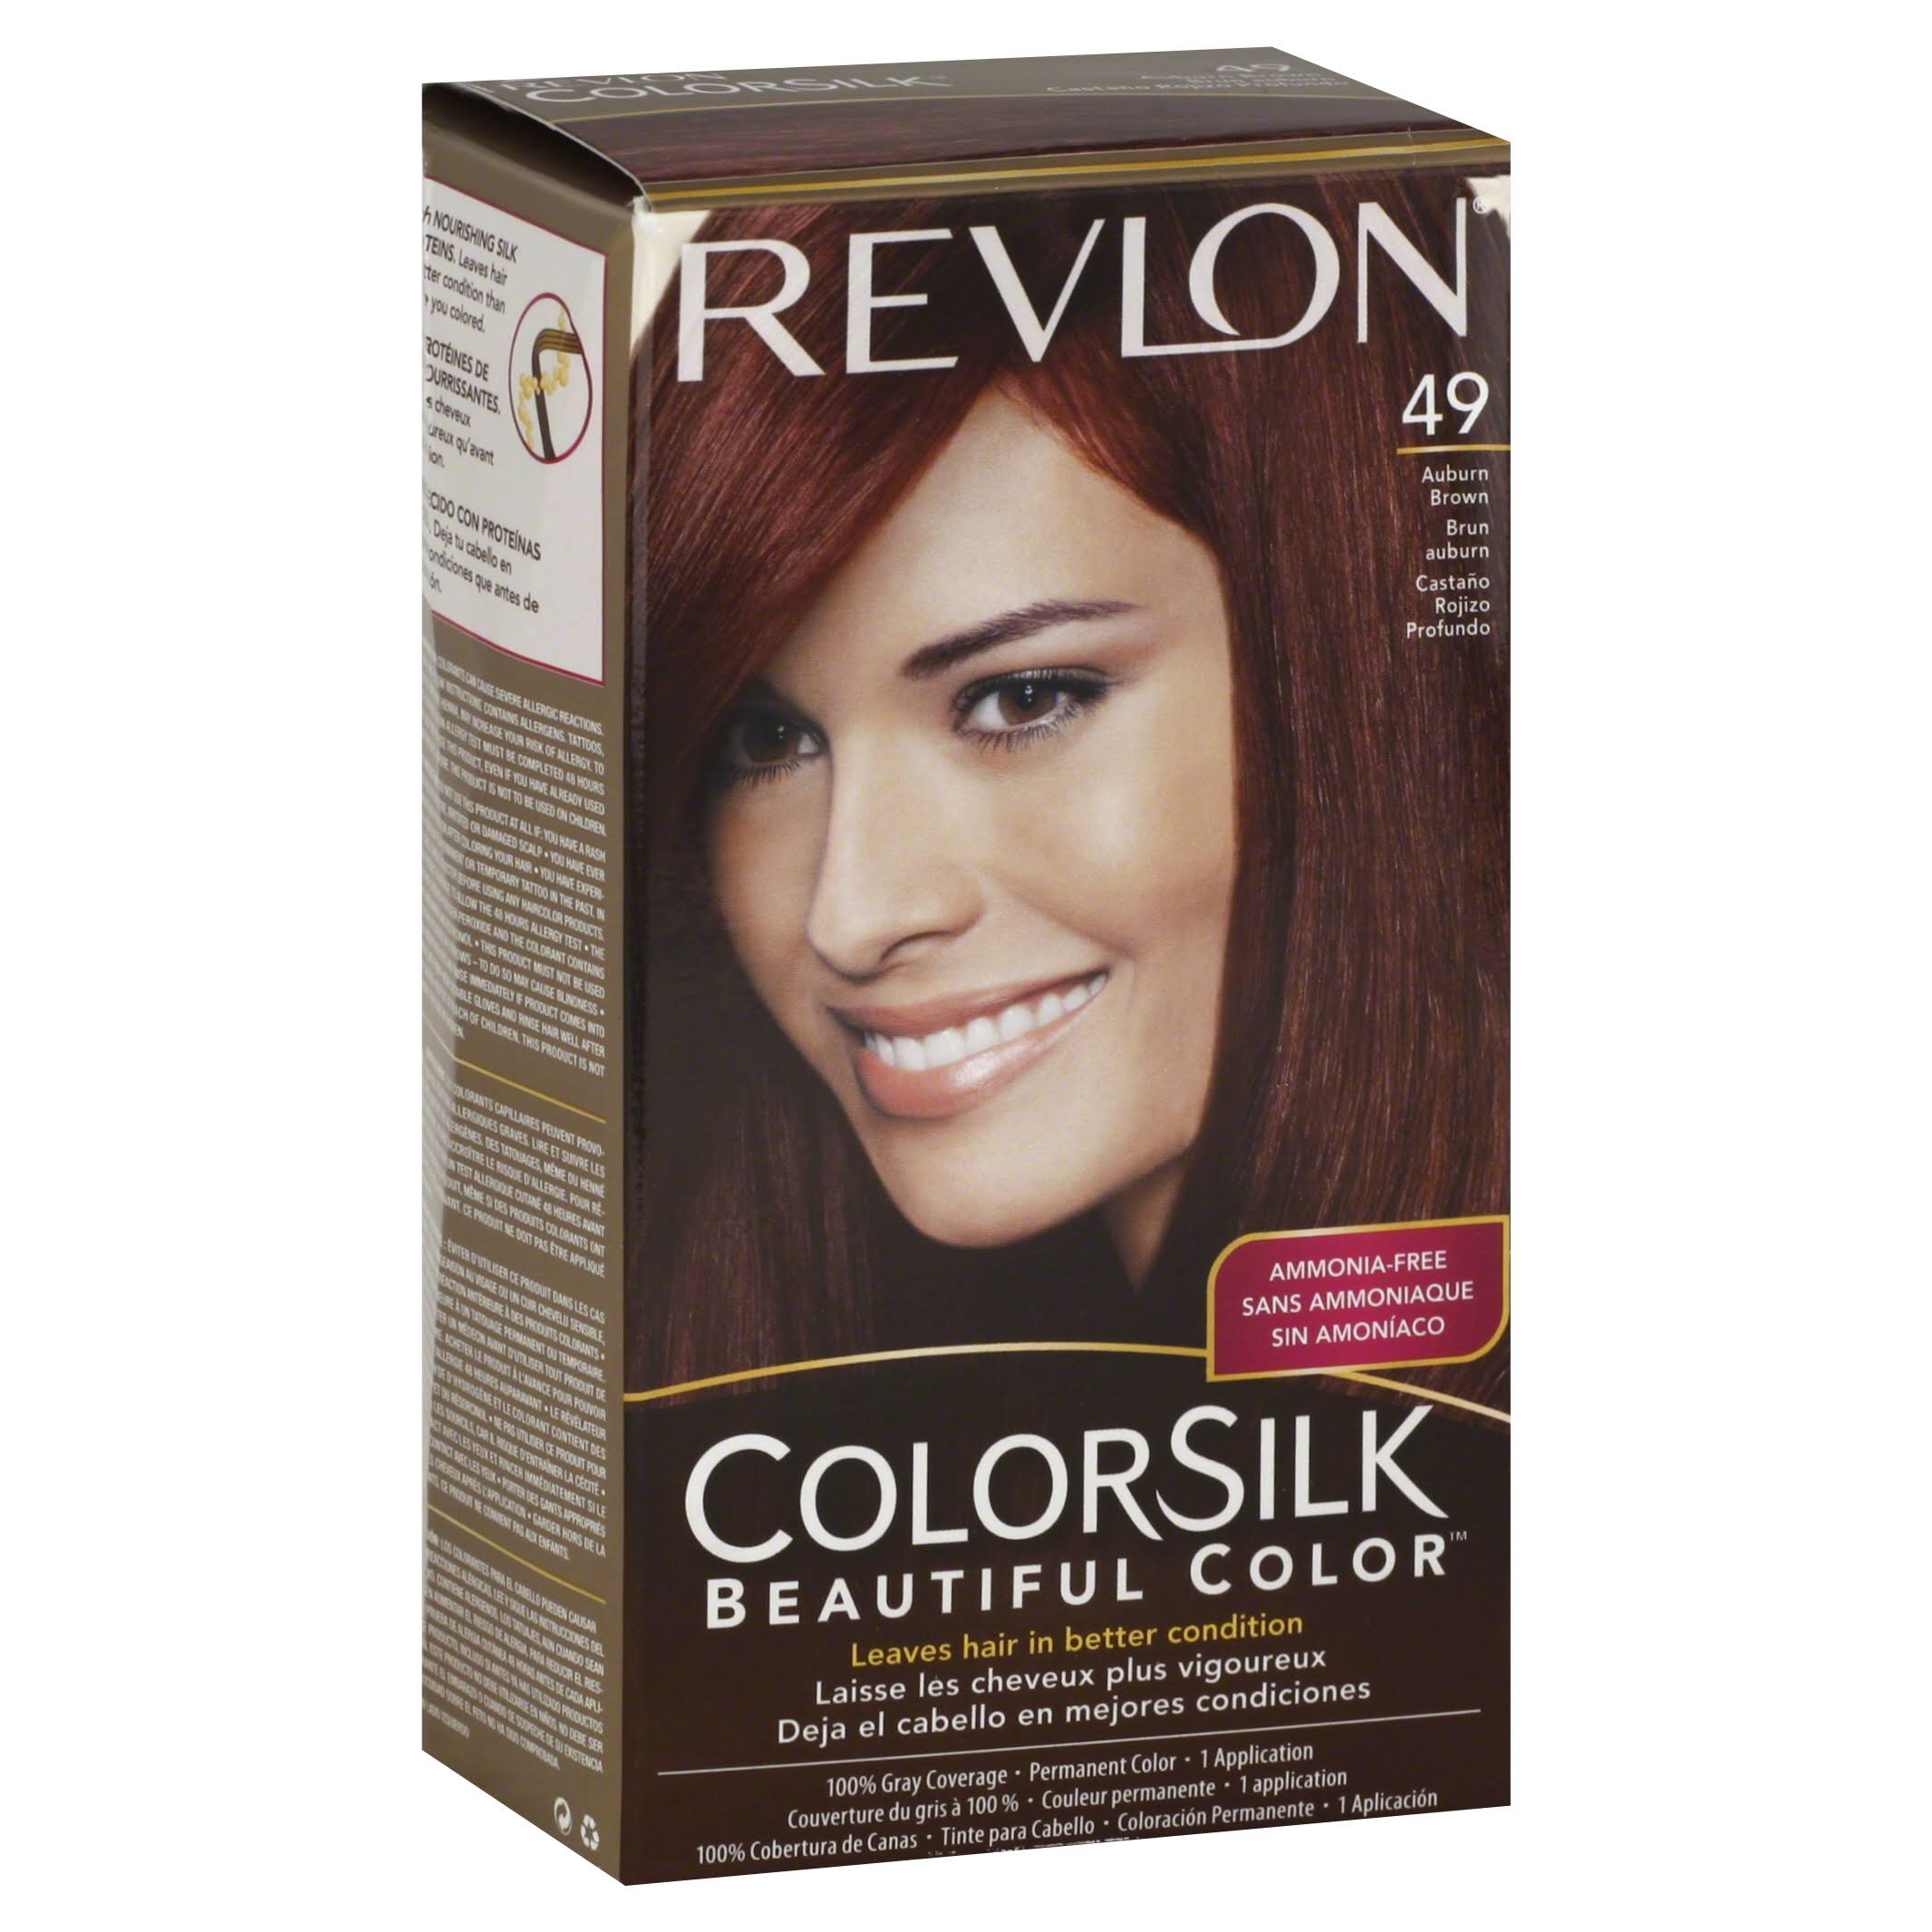 Revlon Colorsilk Hair Color - 49 Auburn Brown